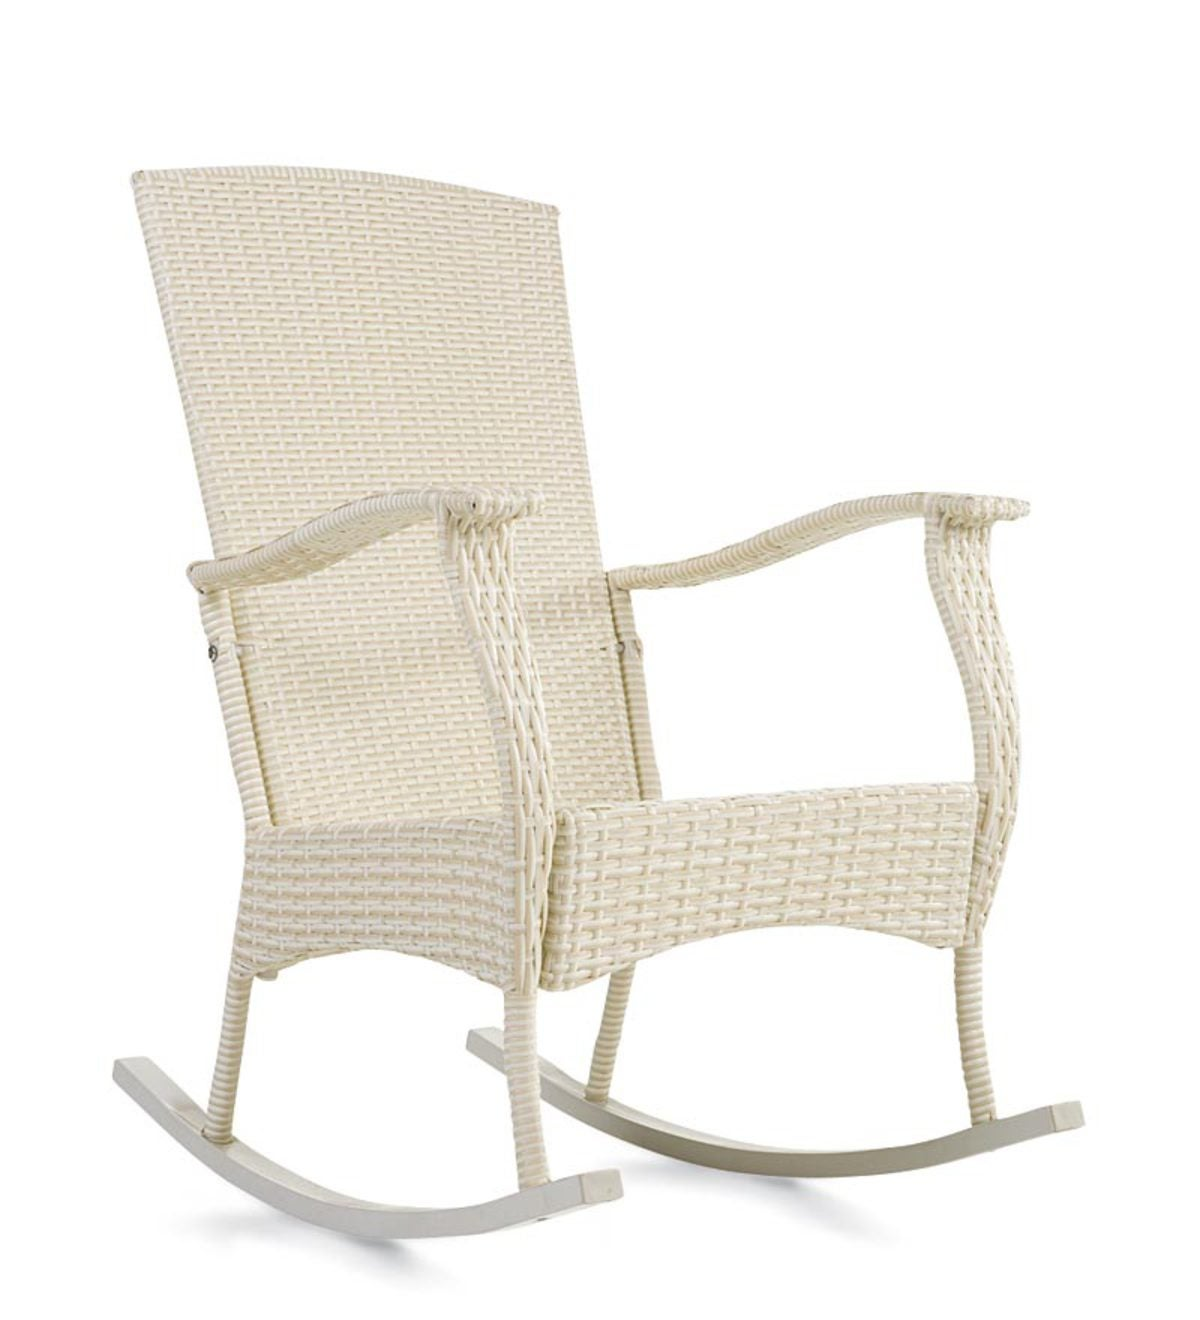 Marvelous Outdoor Or Indoor Wicker Rocking Chair With Steel Frame Machost Co Dining Chair Design Ideas Machostcouk